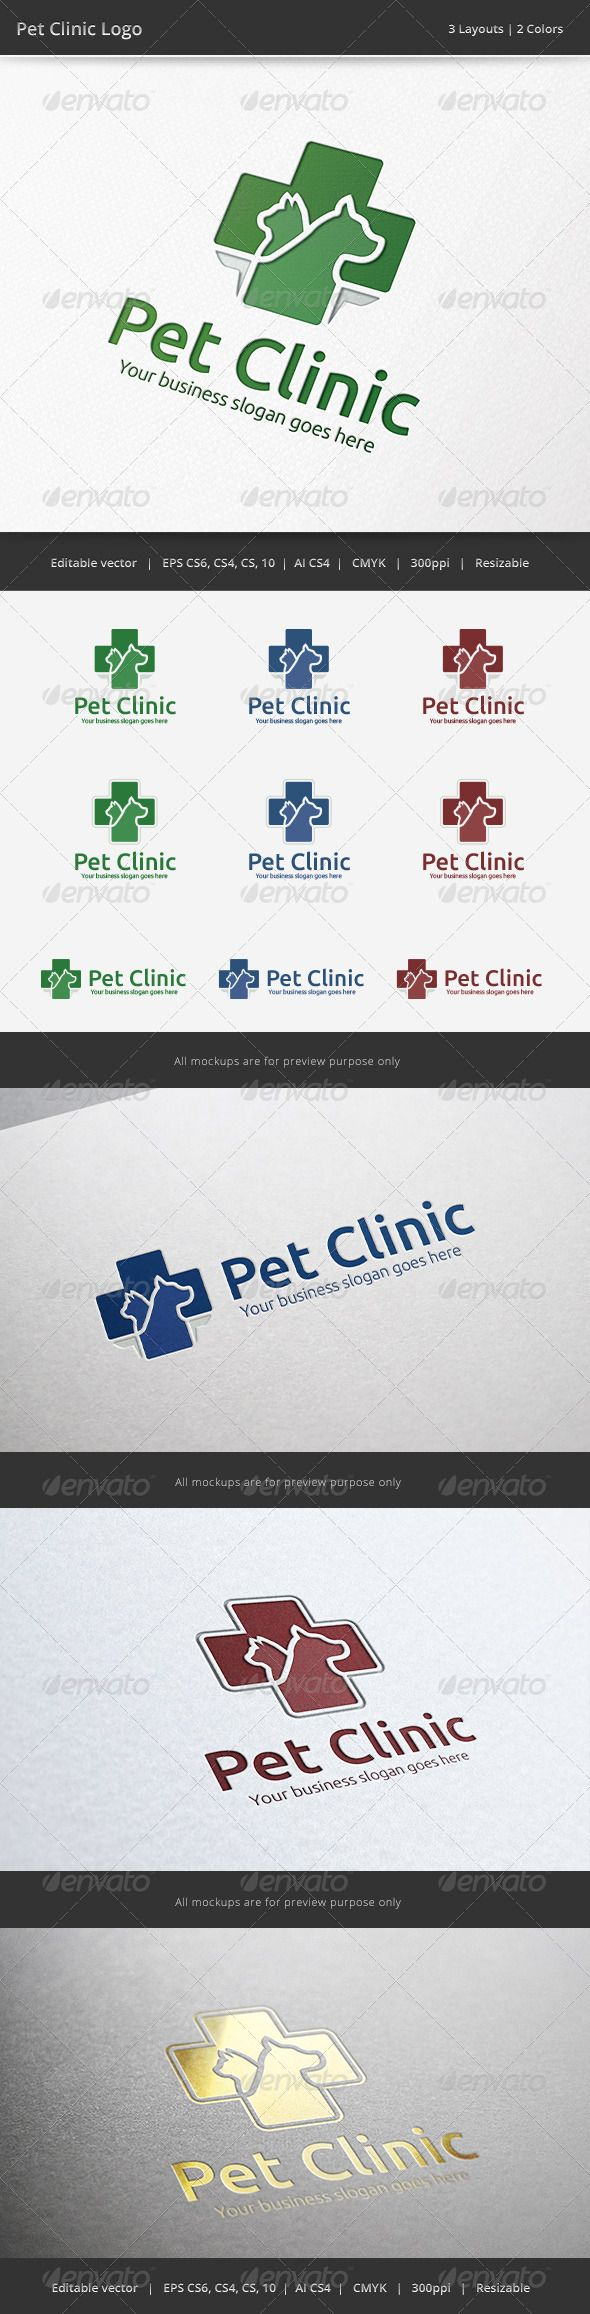 Pet Clinic Veterinary Logo — Vector EPS #hospital #vet • Available here → https://graphicriver.net/item/pet-clinic-veterinary-logo/6525831?ref=pxcr